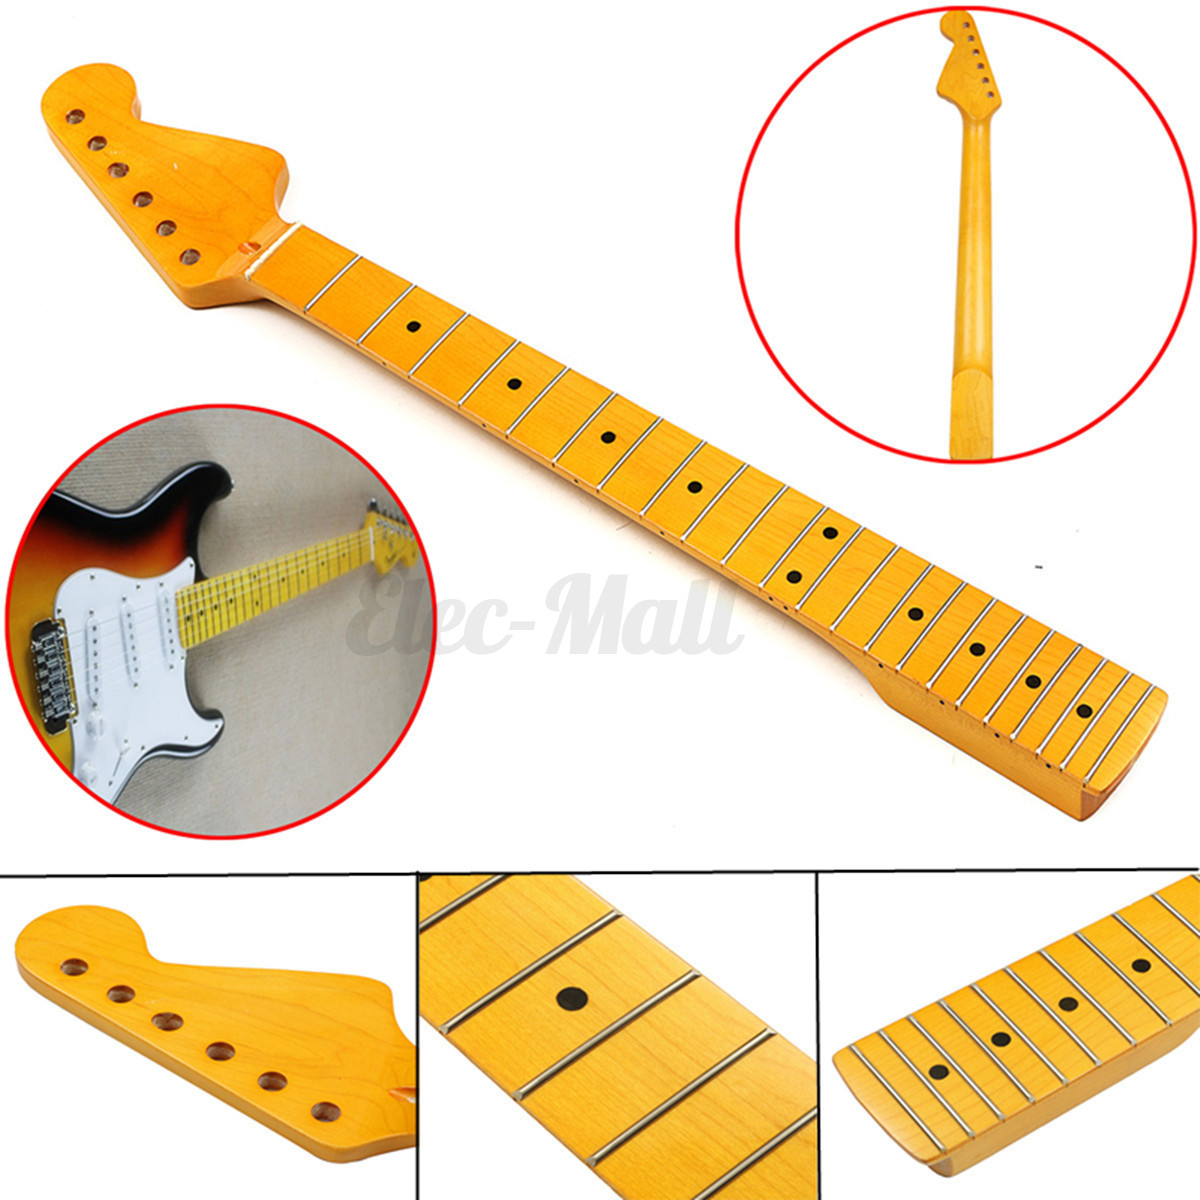 22 fret electric guitar neck maple wood fretboard for st parts replacement new ebay. Black Bedroom Furniture Sets. Home Design Ideas